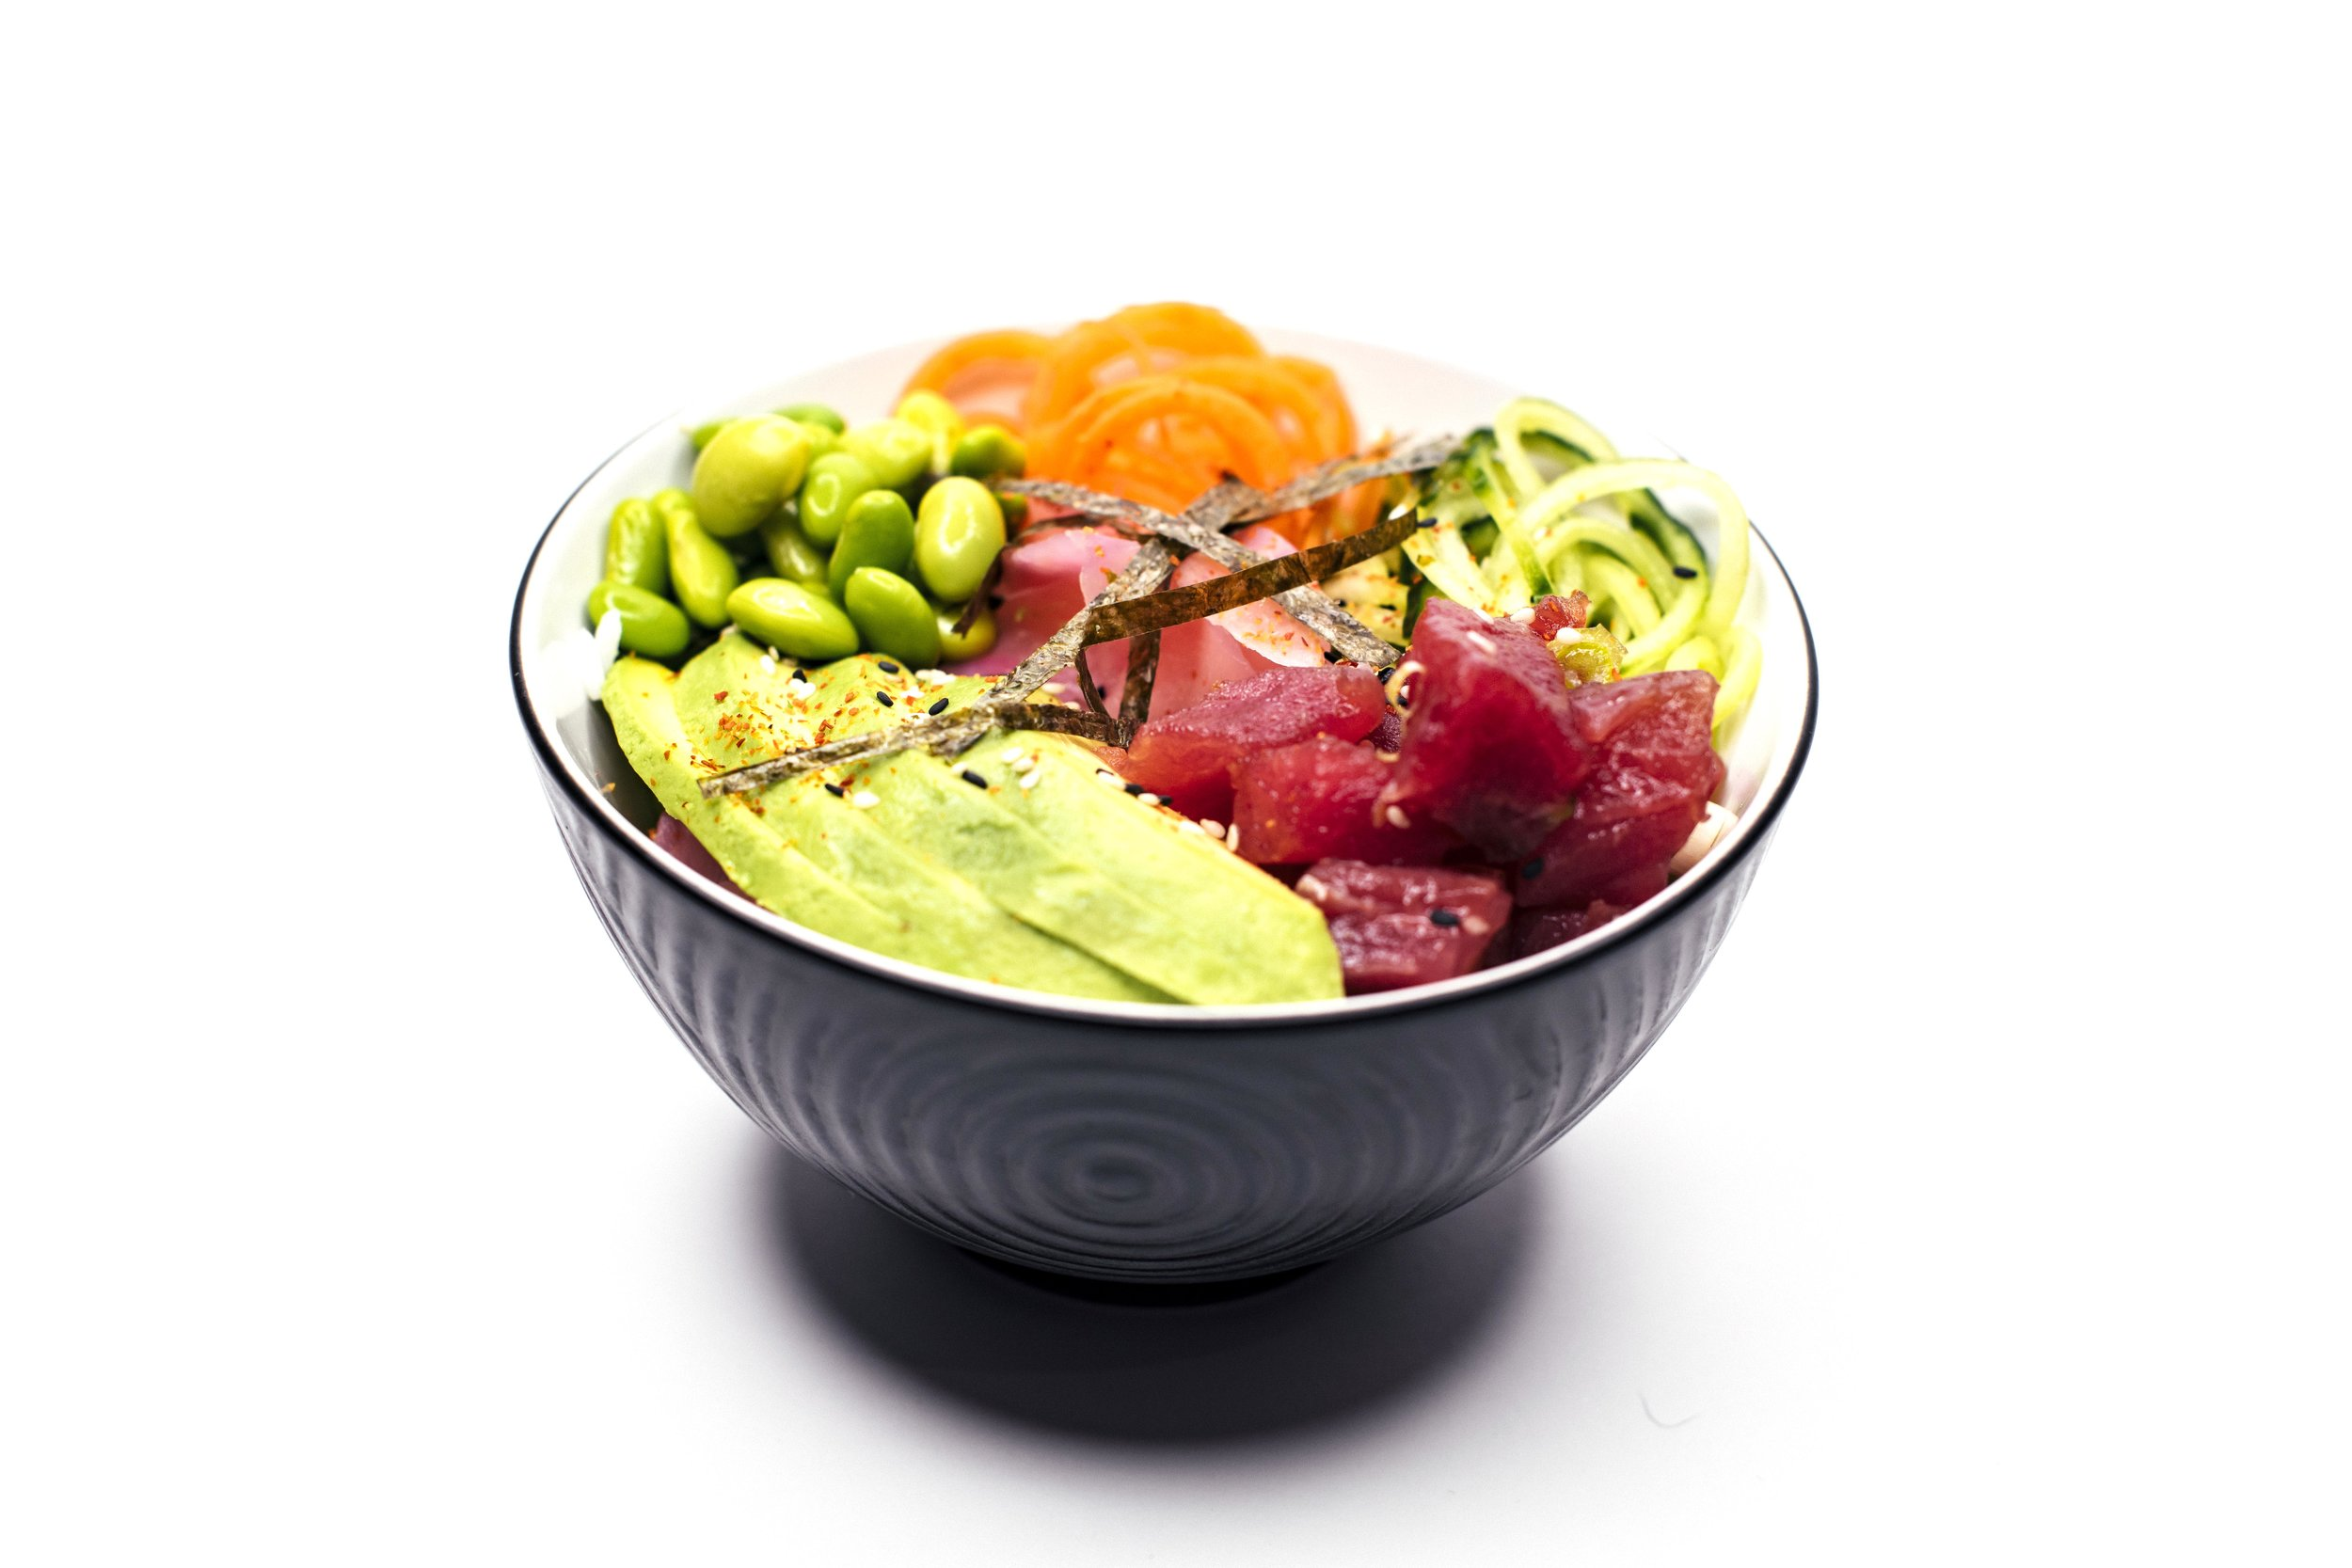 TUNA FIRE BOWL - Tuna, Rice, Cucumber, Carrot, Edamame Beans, Pickled ginger, Avocado, Shredded Nori, Ponzu Power Sauce